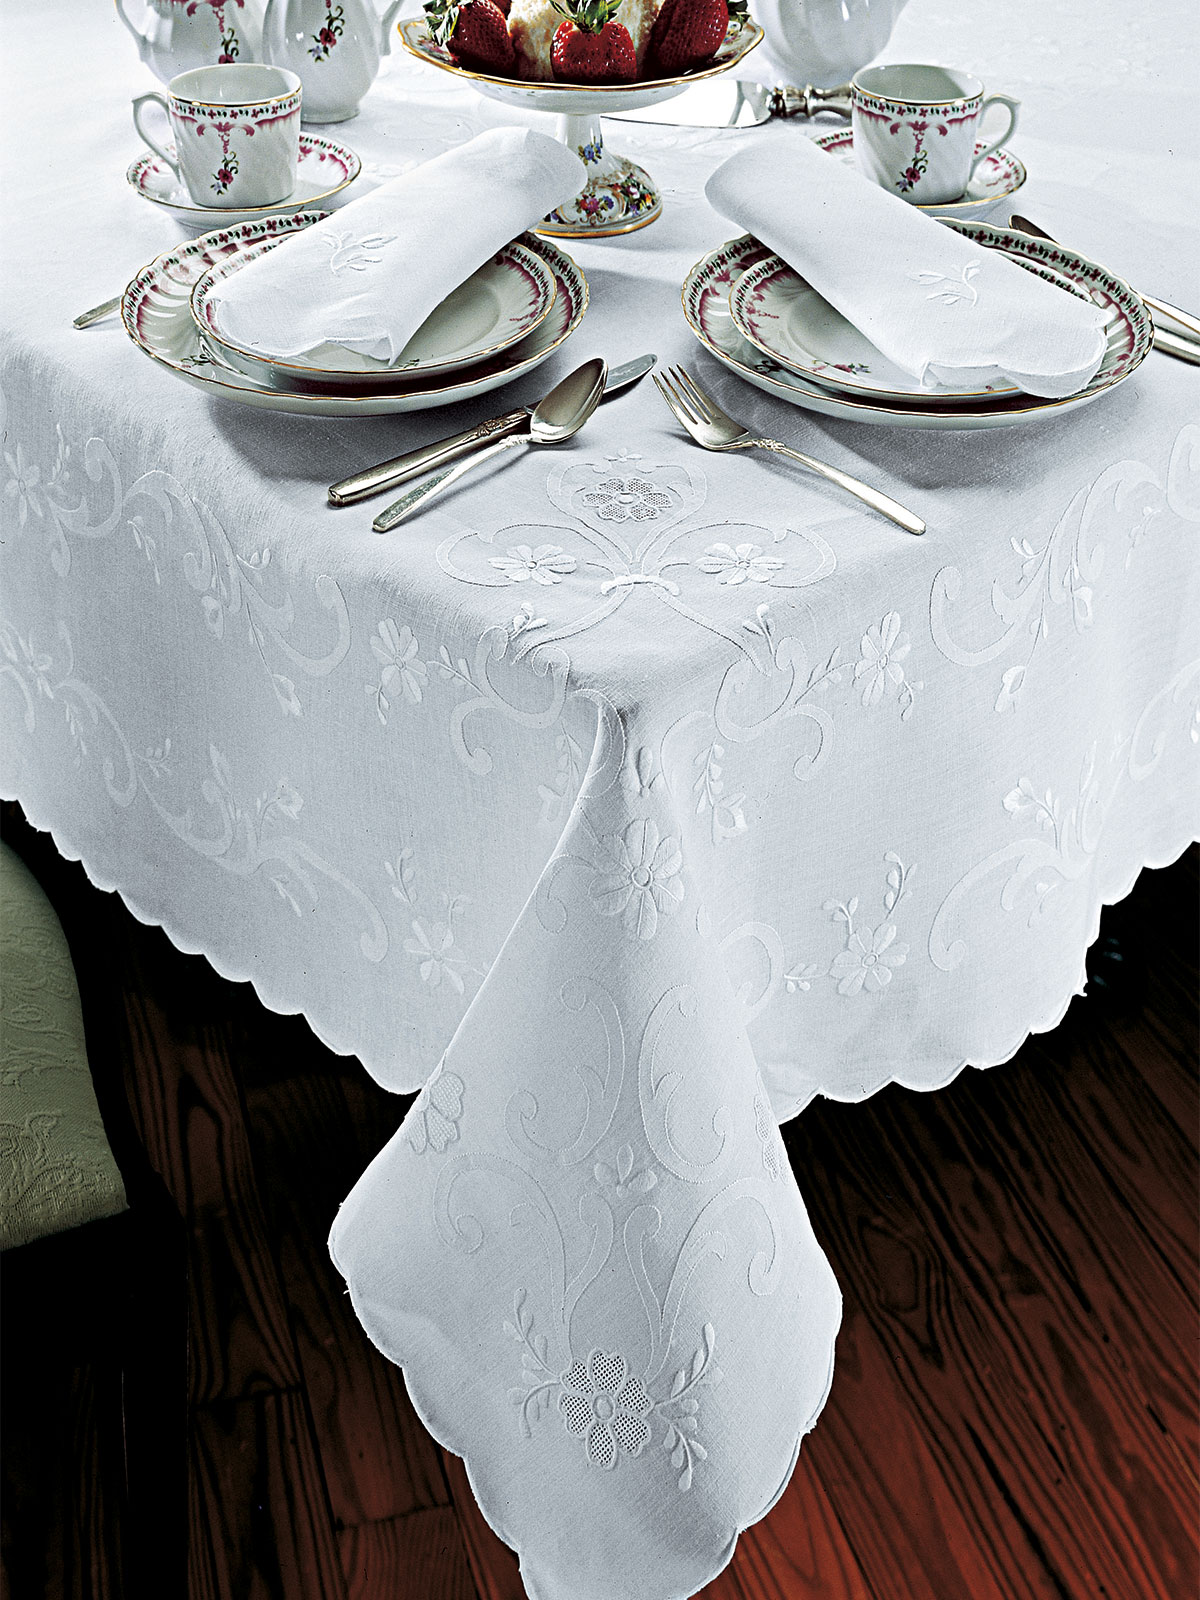 Tips for a Proper Table Setting | Schweitzerlinen